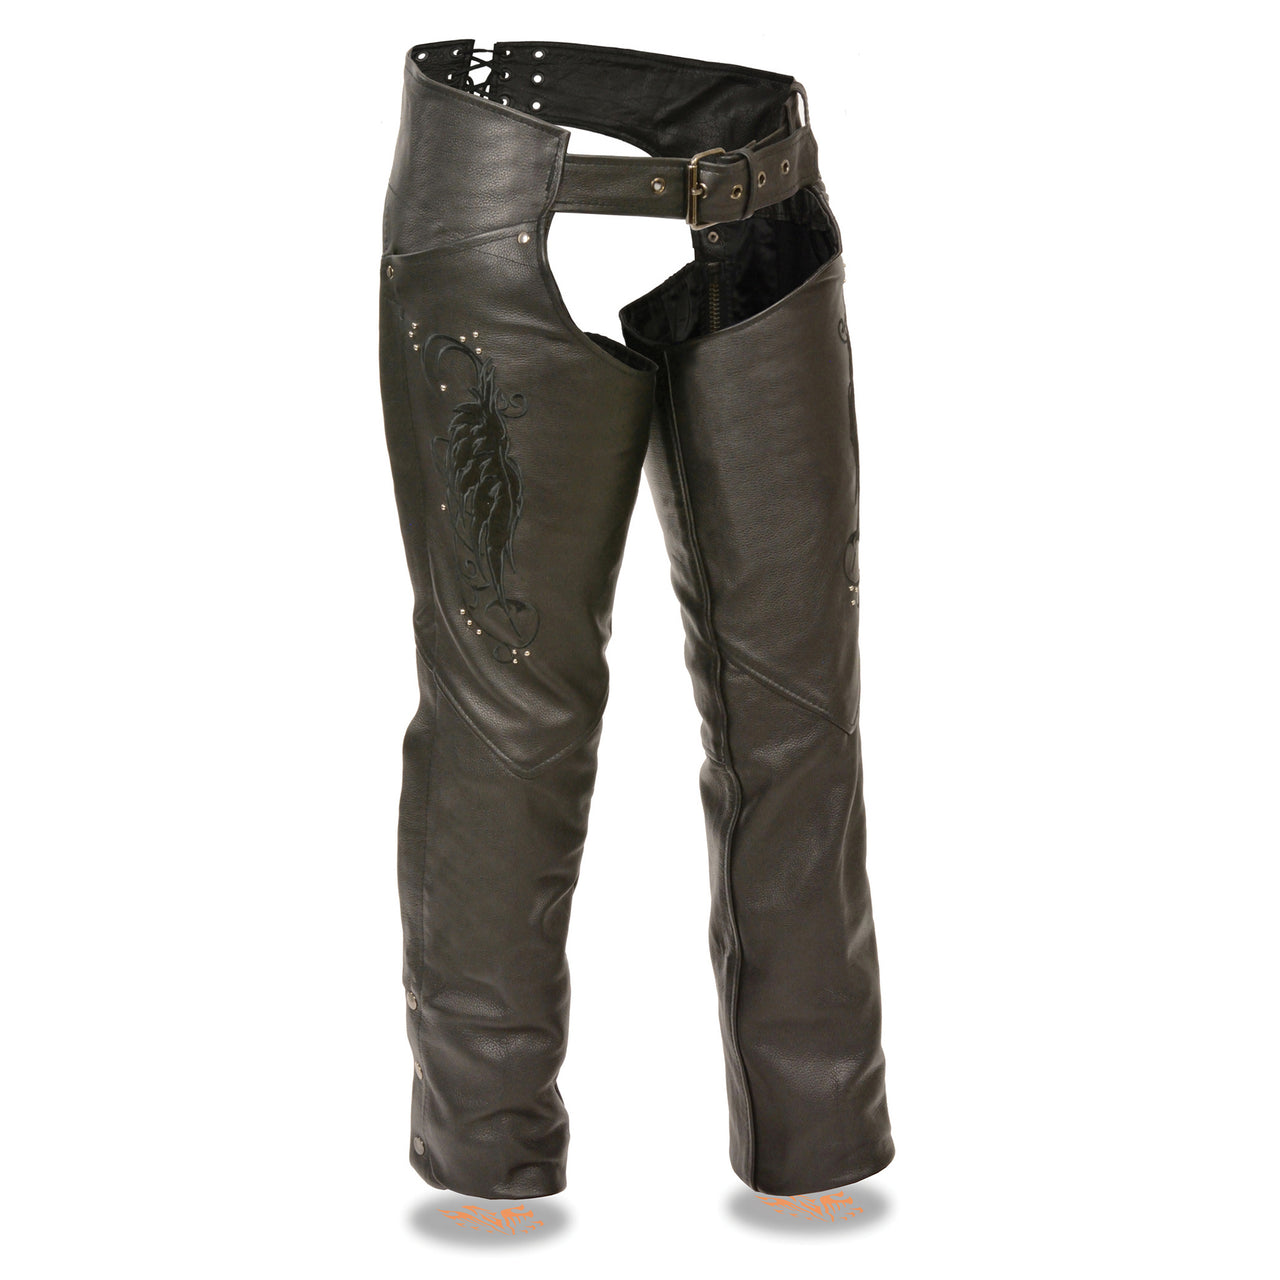 Ladies Chap w/ Wing Embroidery And Rivet Detailing - HighwayLeather